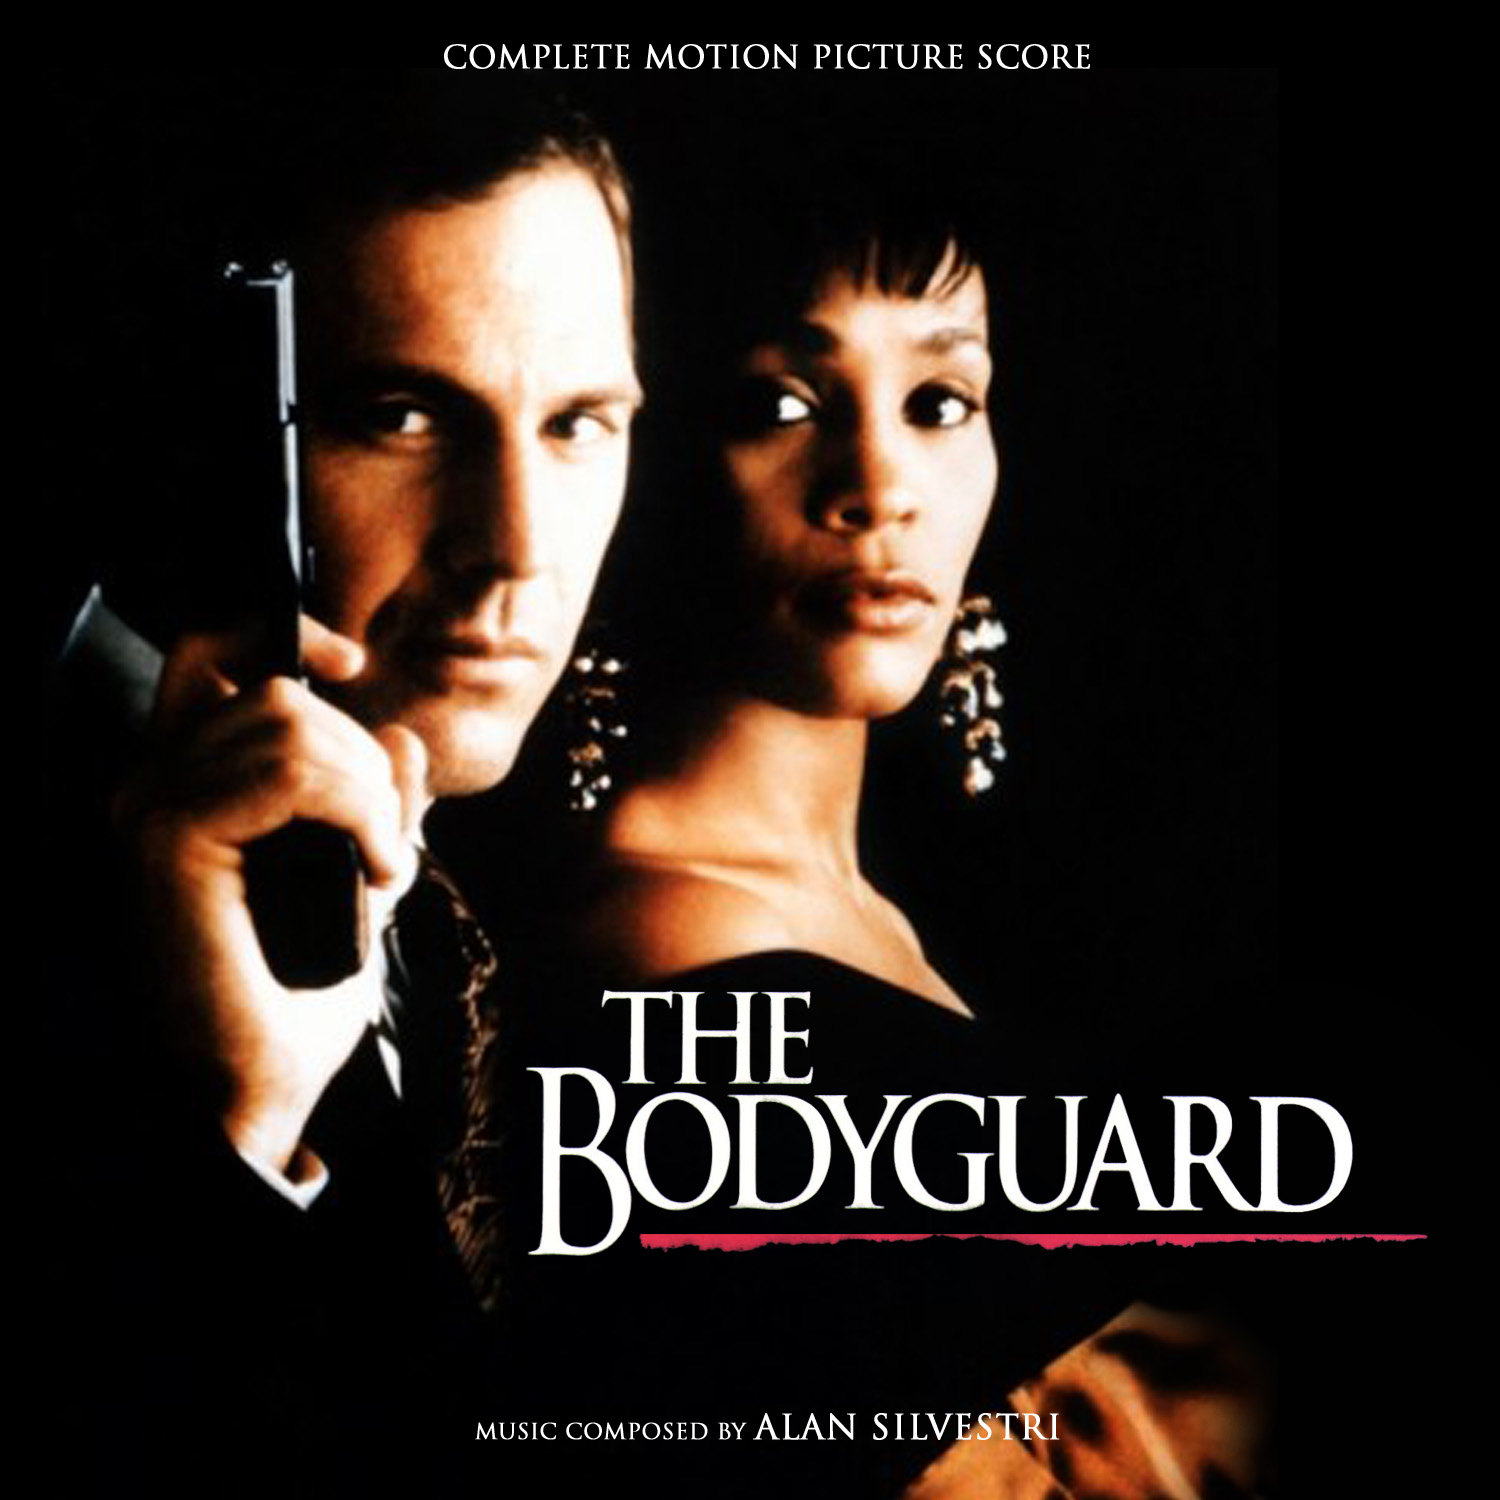 Resultado de imagen para the bodyguard movie